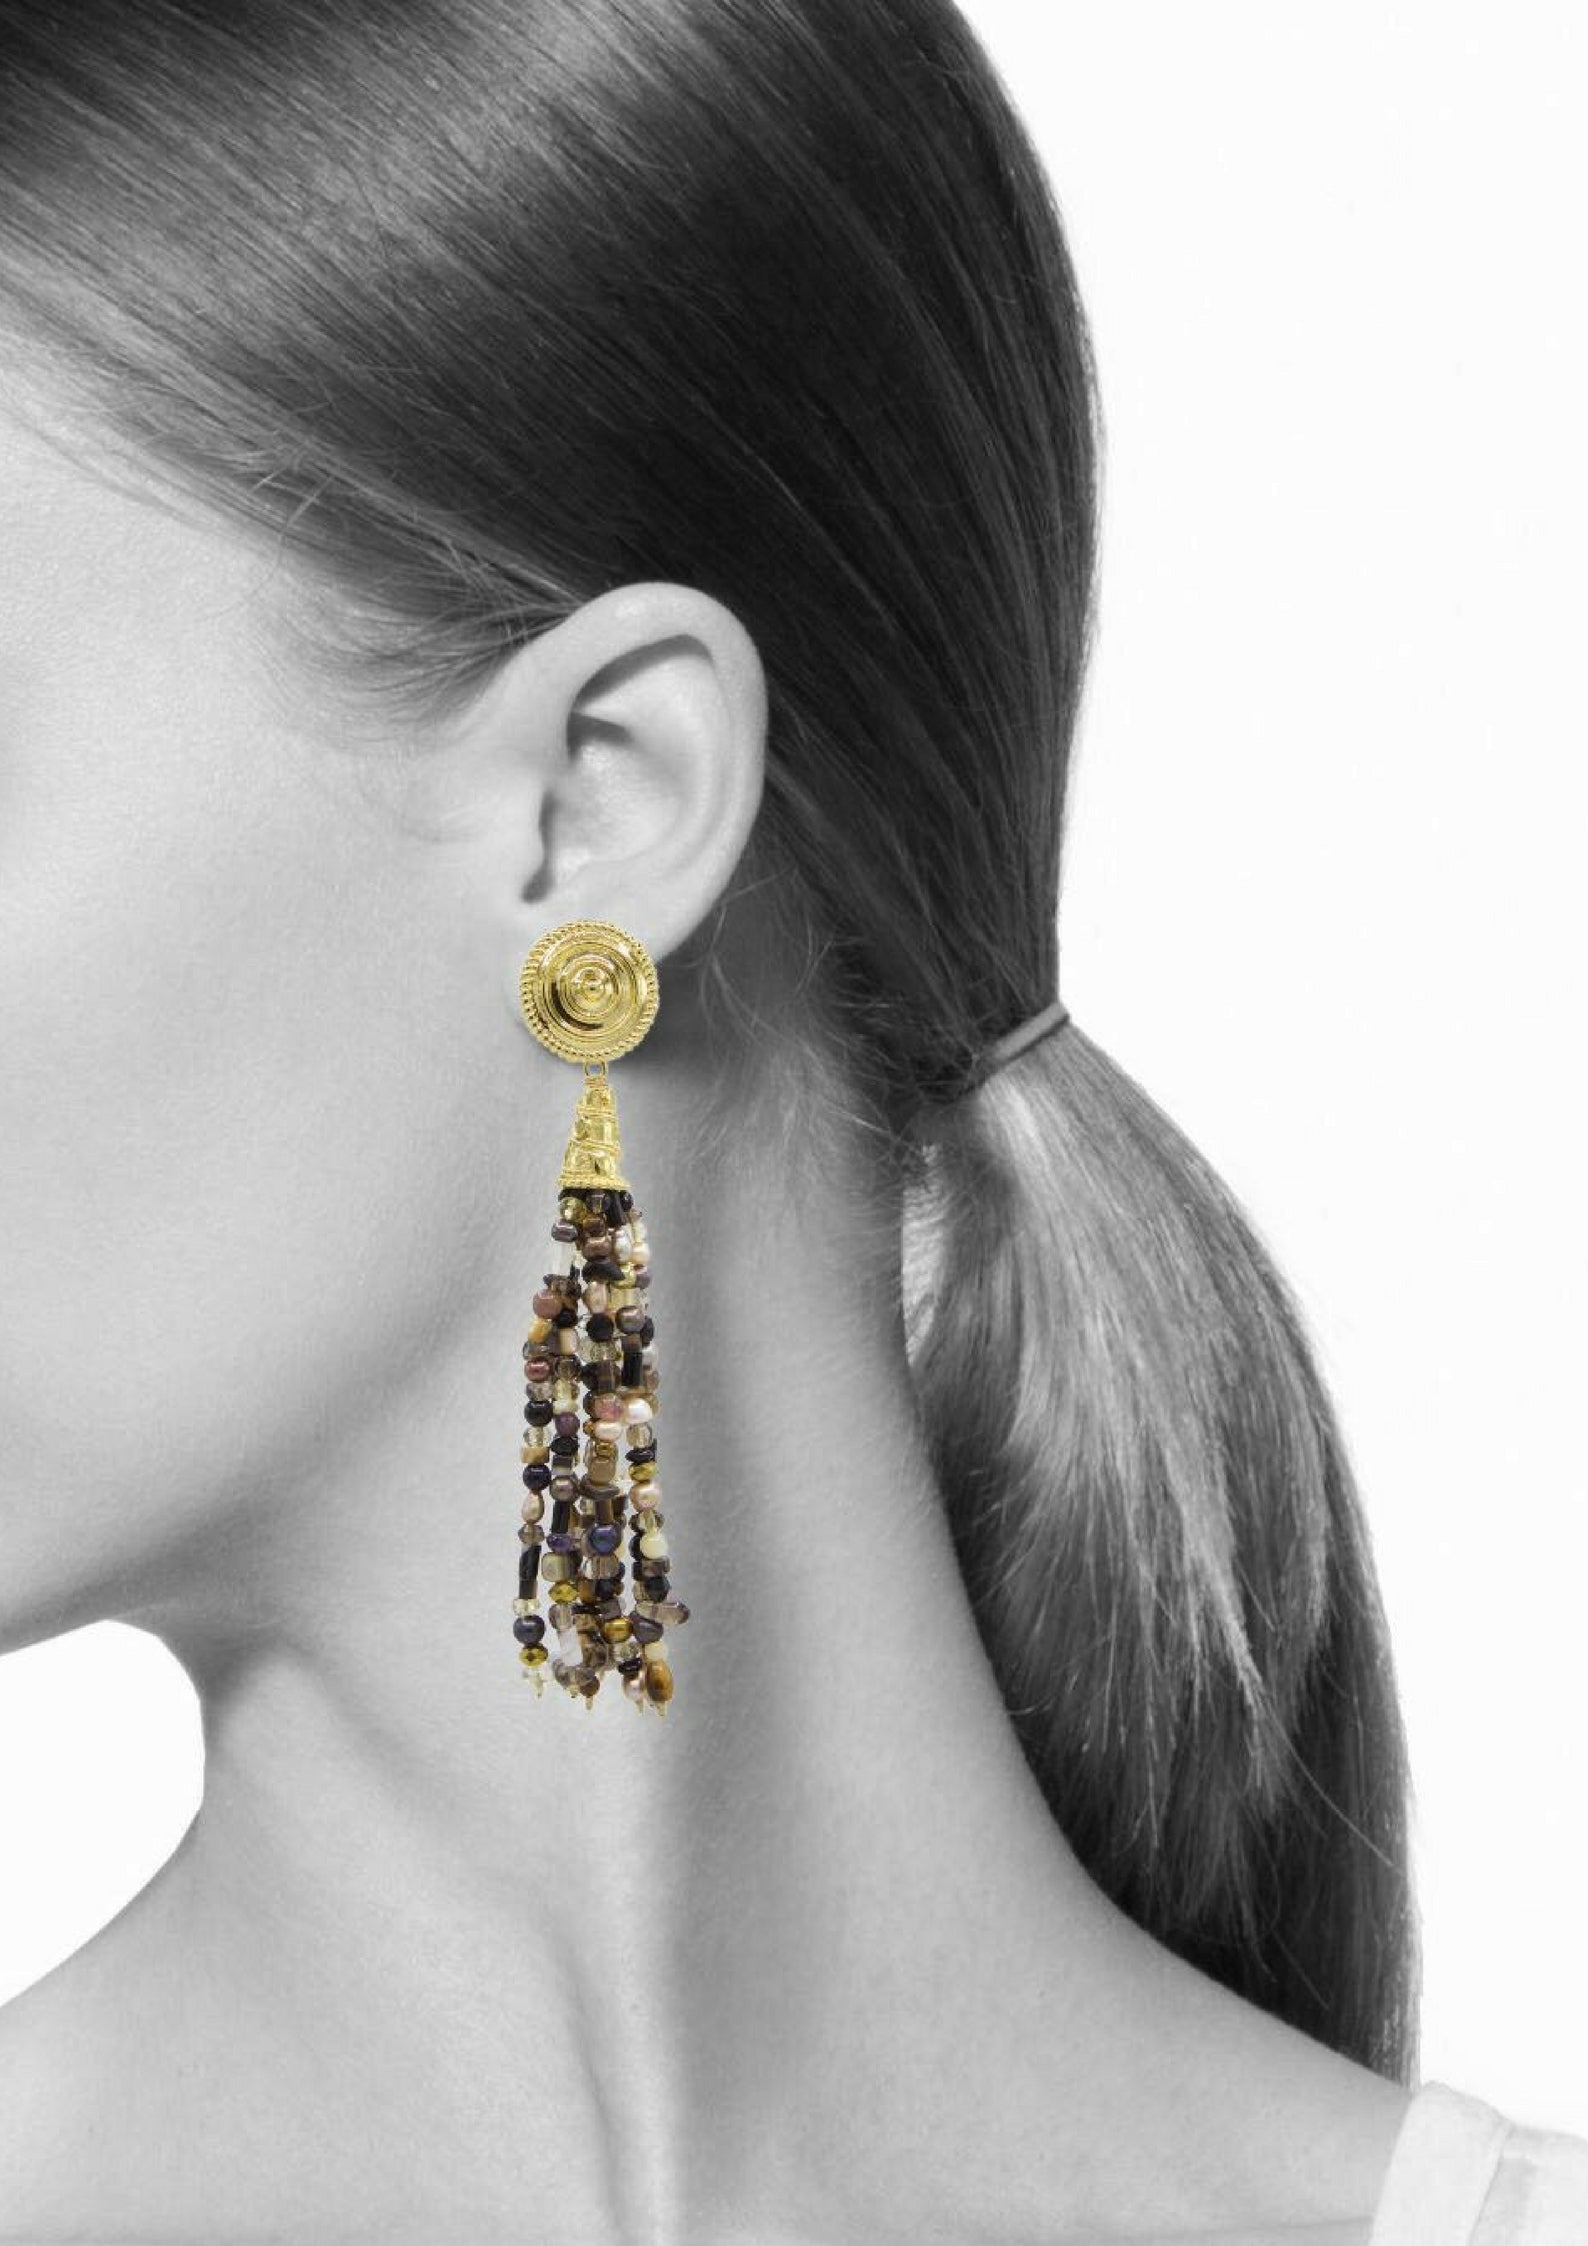 Loquacious Tassel Earrings-Earrings-Jared Jamin Online-Multi Color-JARED JAMIN